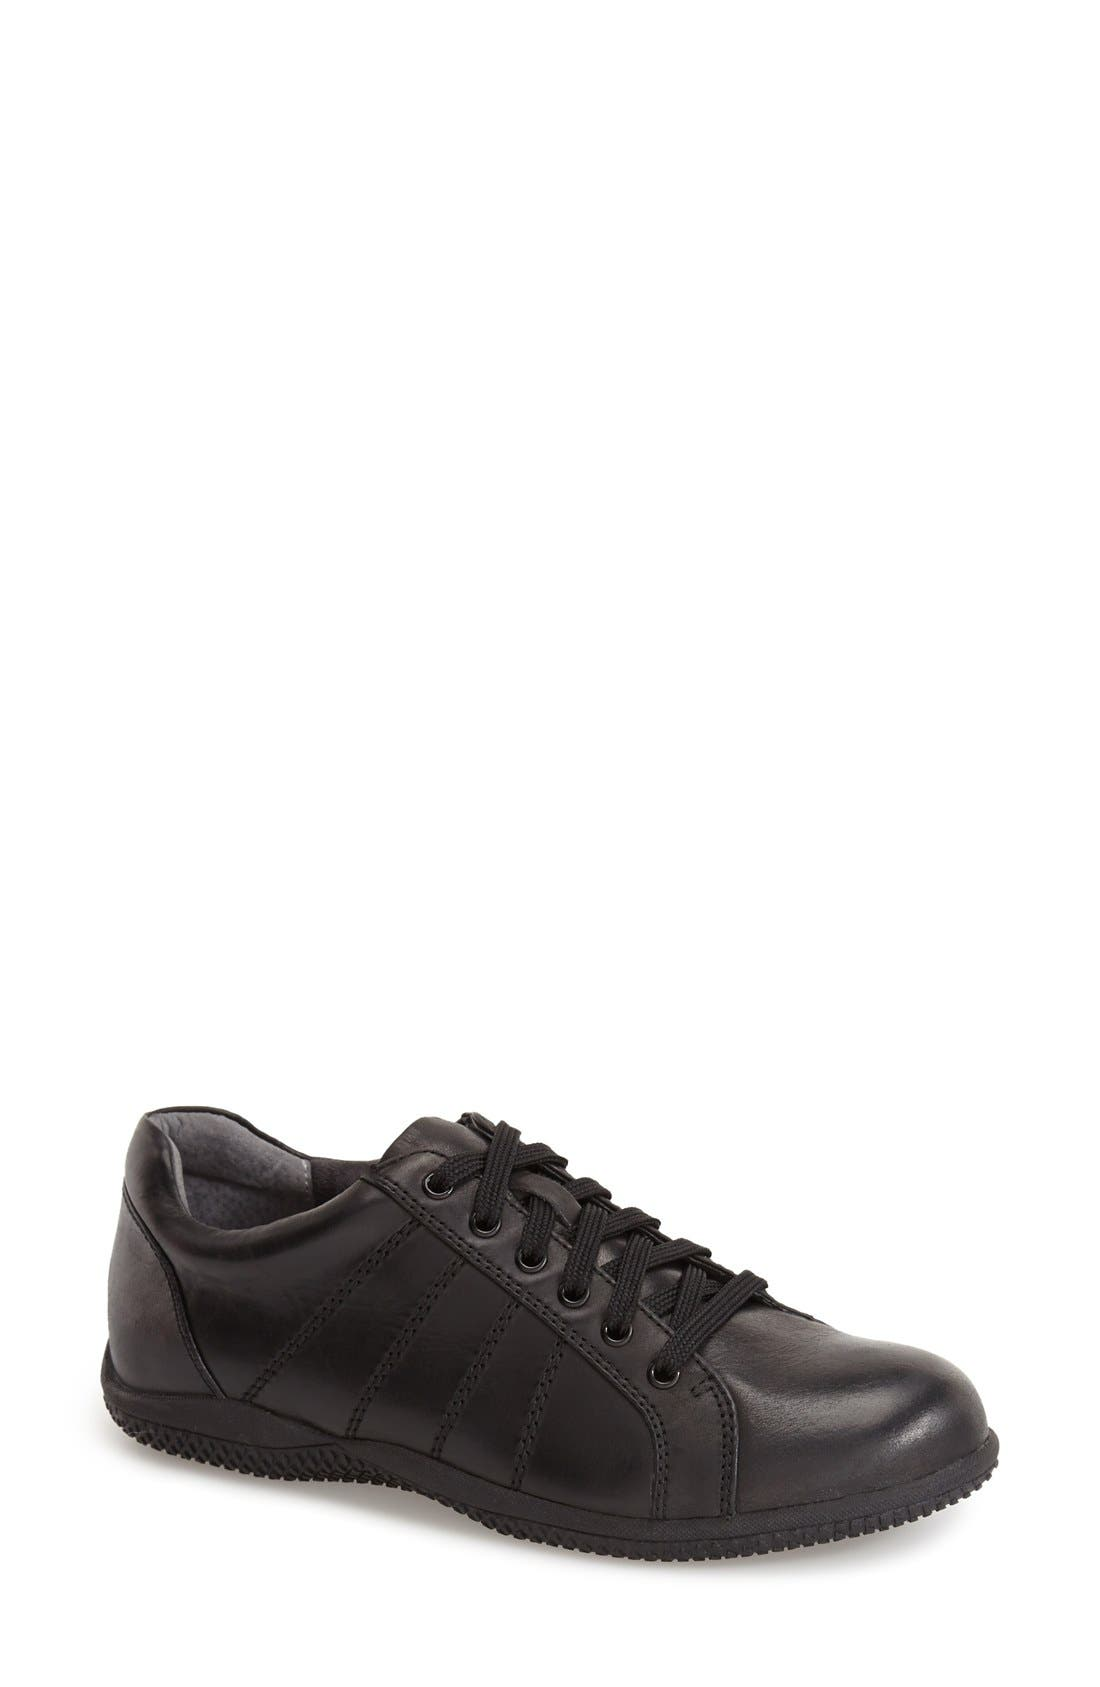 'Hickory' Sneaker,                         Main,                         color, 001